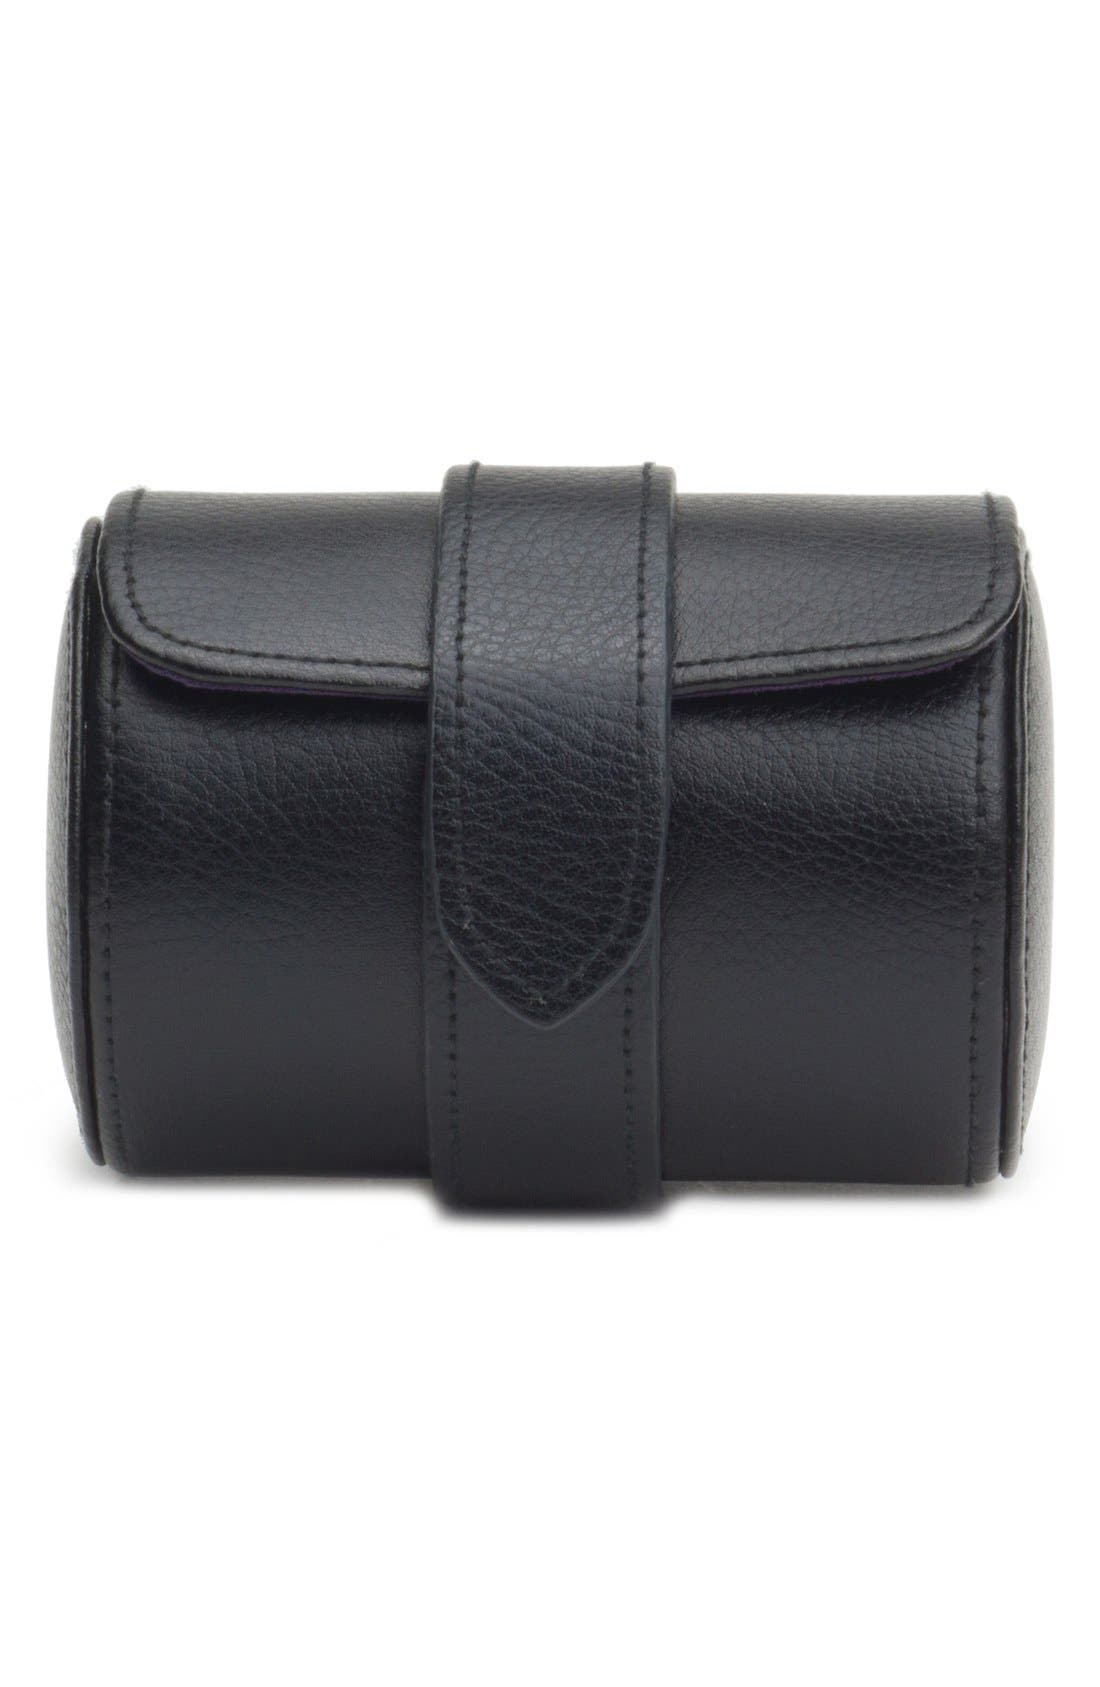 Blake Watch Roll,                         Main,                         color, Black Pebble